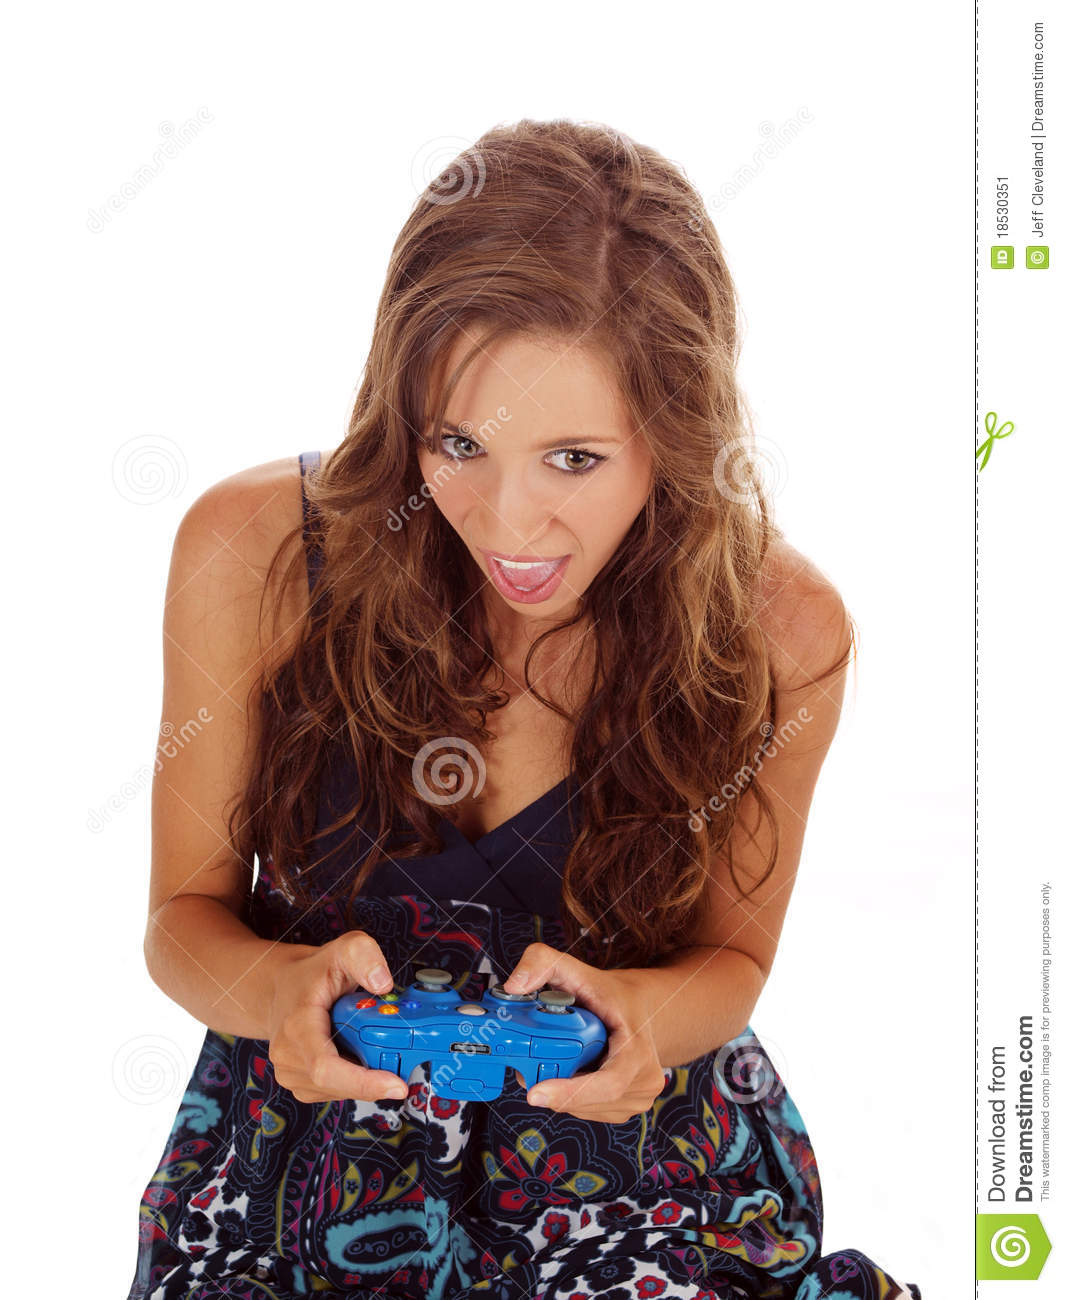 Young teen girl with game controller mouth open